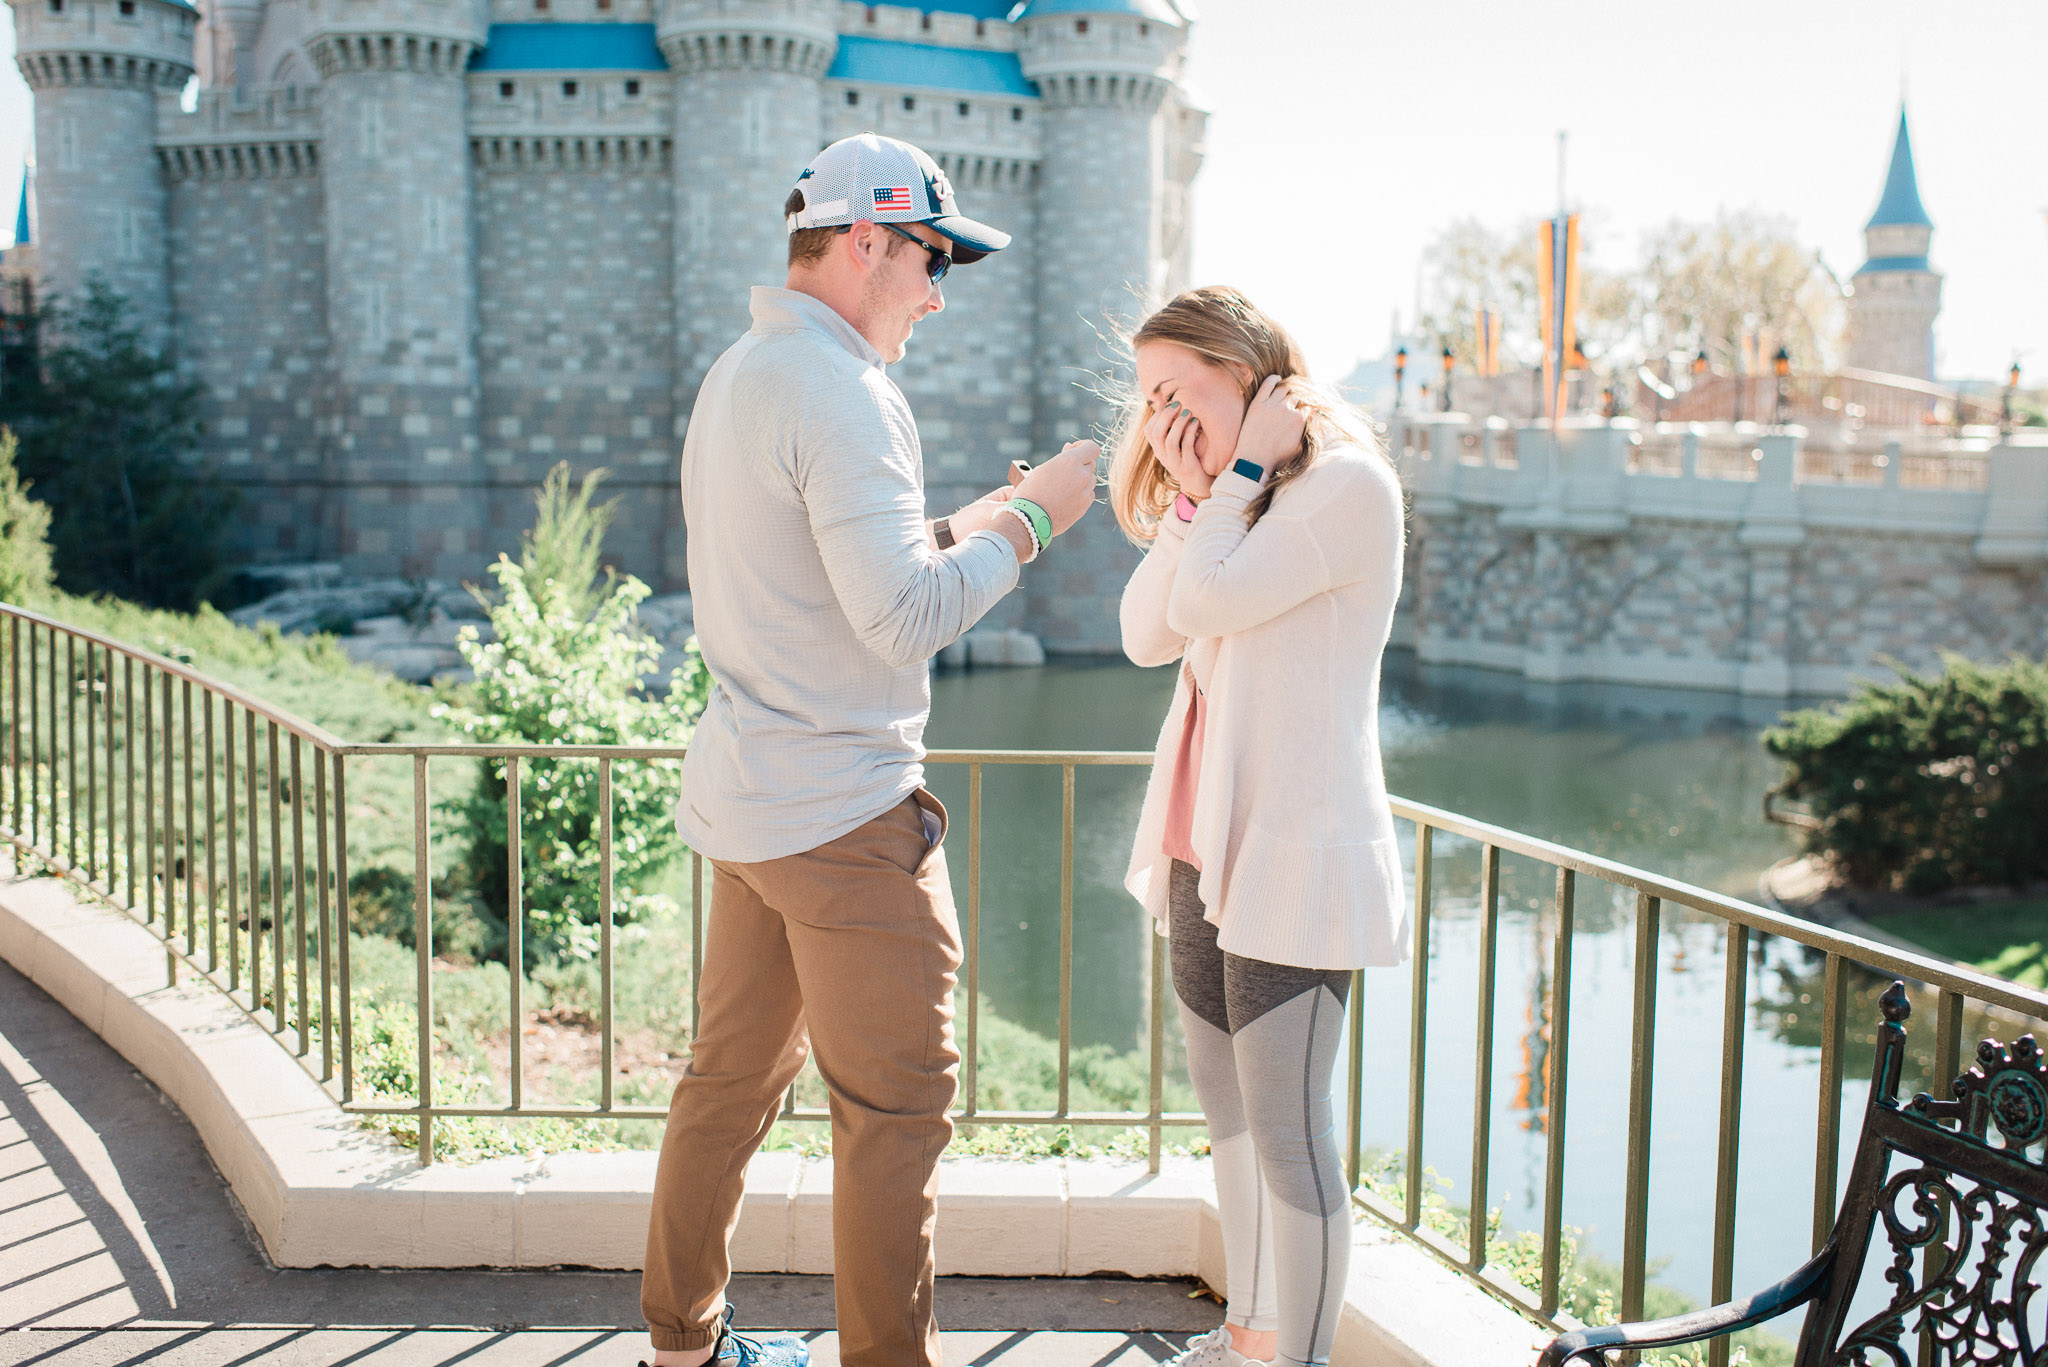 KateTaramykinStudios-Disney-World-Proposal-Kup-11.jpg